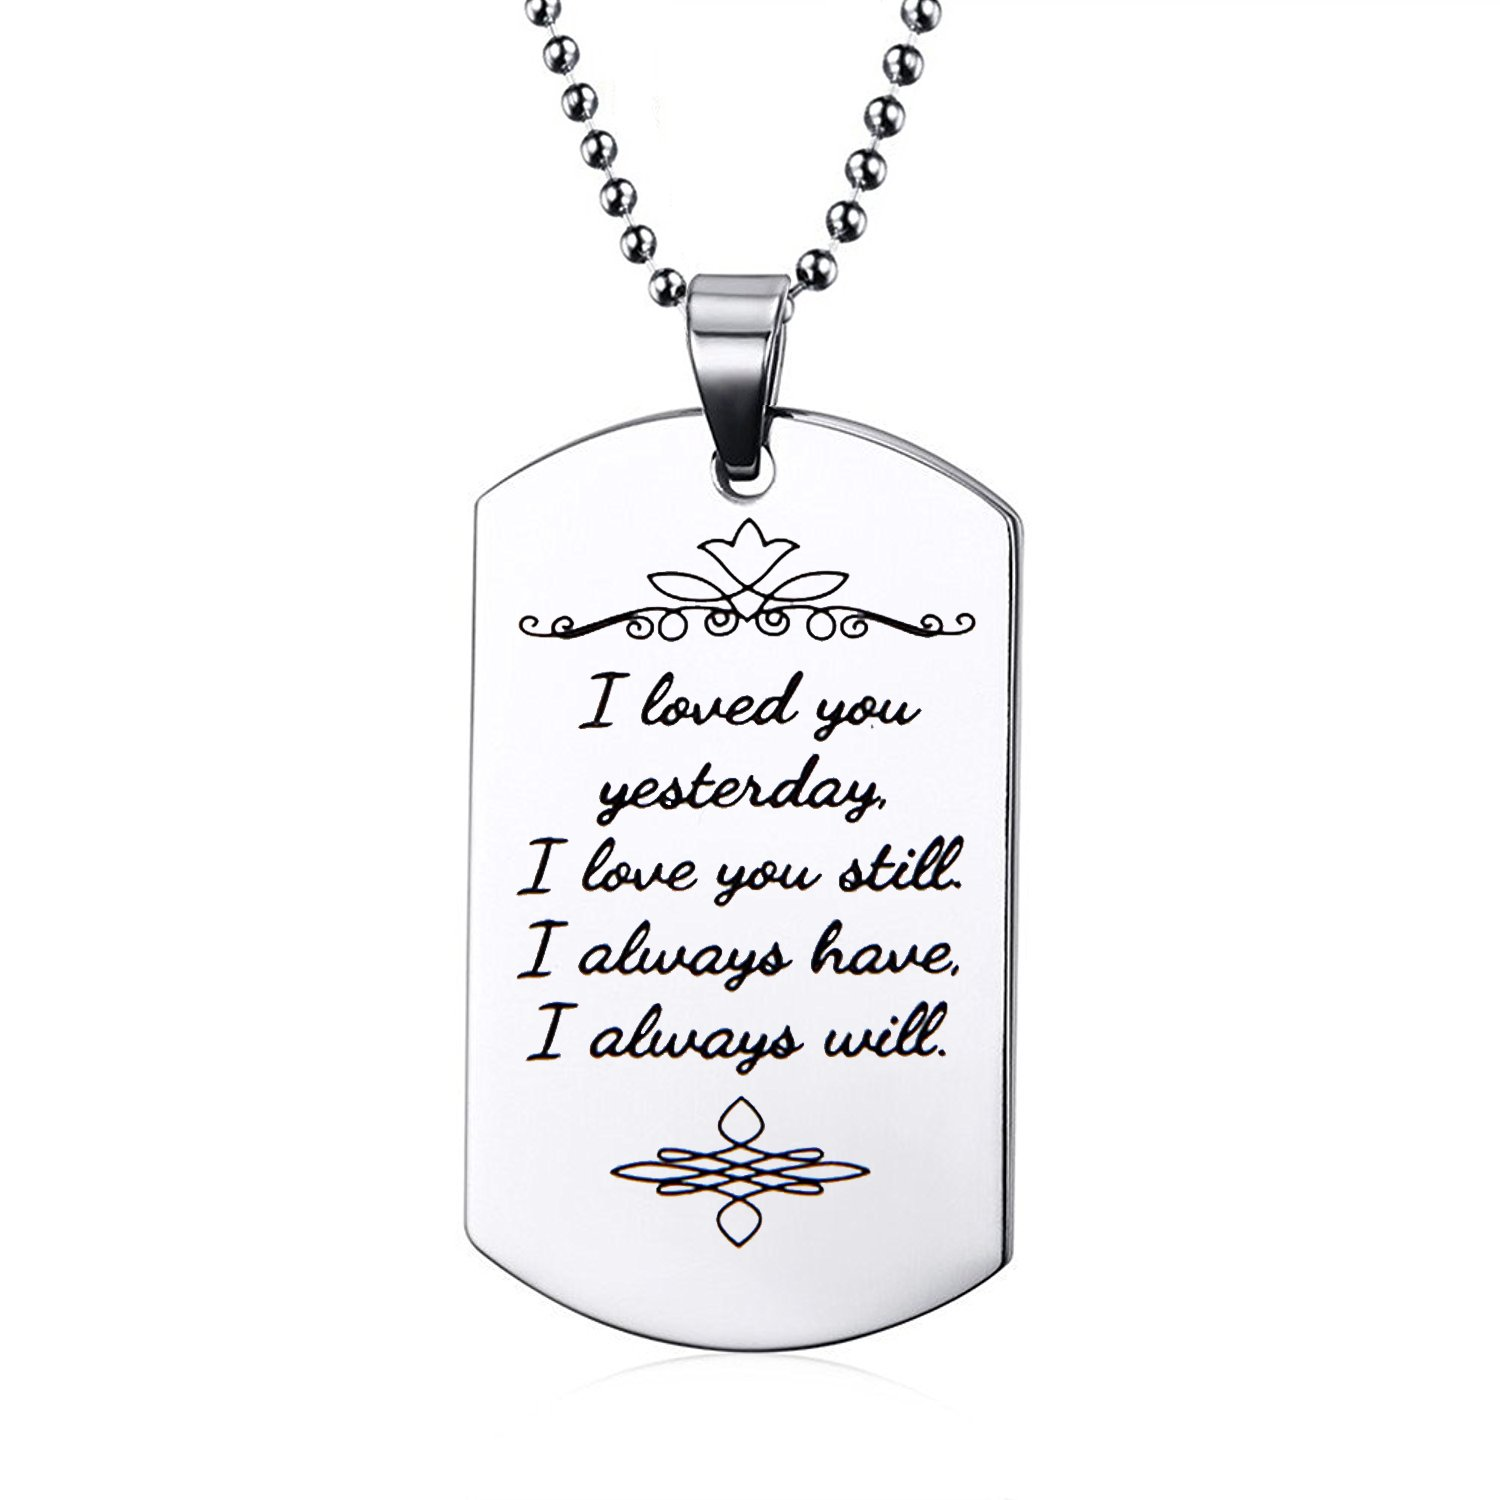 ENSIANTH I Love You Yesterday I Love You Still I Always Have I Always Will Stainless Steel Engraved Necklace and Keychain (Love Necklace)